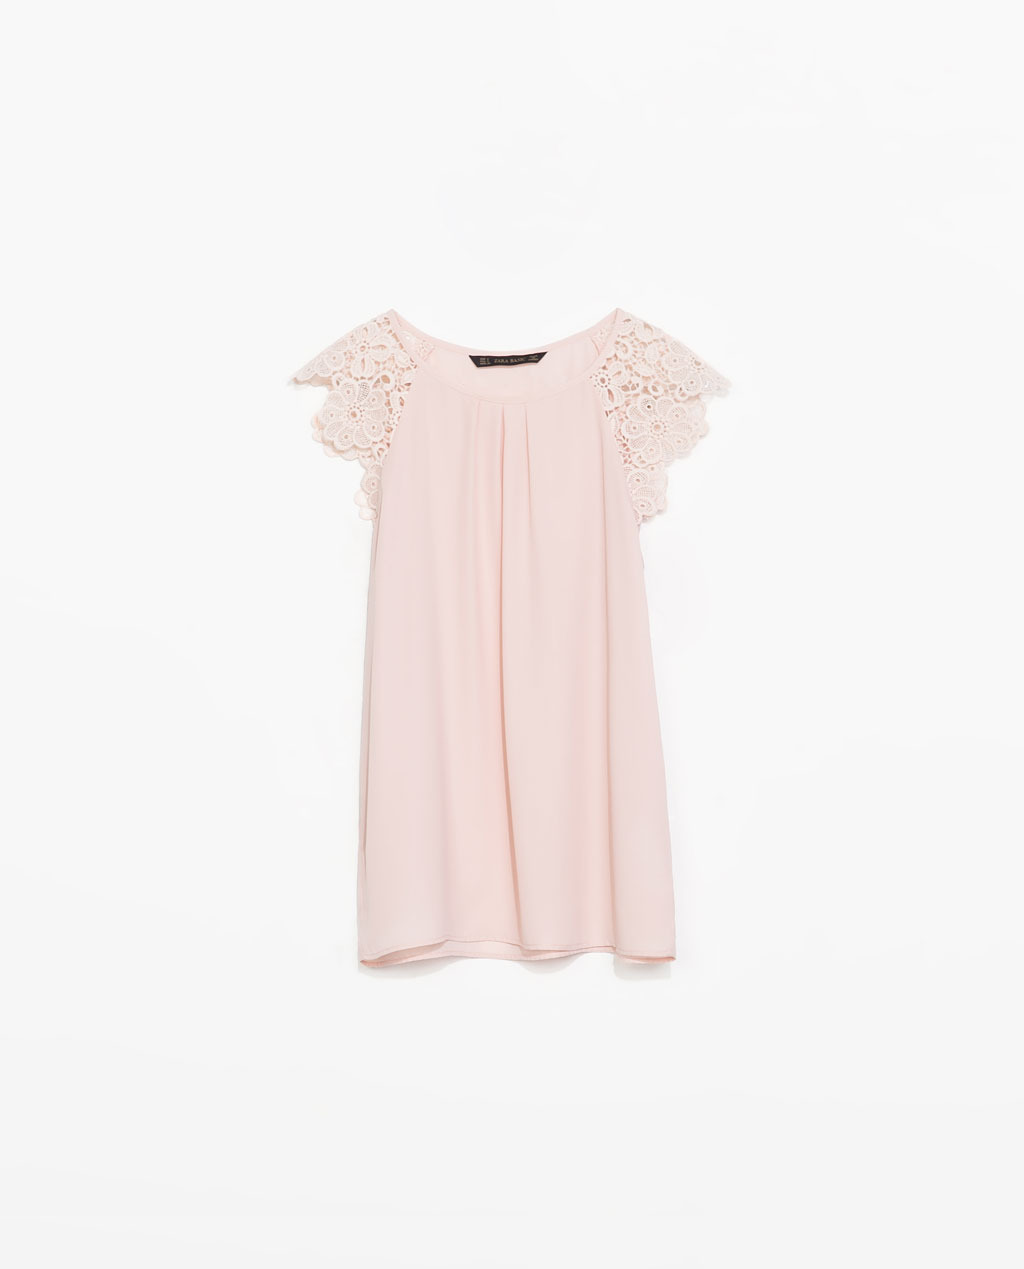 Top With Guipure Sleeve - neckline: round neck; sleeve style: capped; pattern: plain; bust detail: subtle bust detail; predominant colour: blush; occasions: casual, creative work; length: standard; style: top; fibres: polyester/polyamide - 100%; fit: straight cut; sleeve length: short sleeve; texture group: crepes; pattern type: fabric; embellishment: lace; season: s/s 2014; wardrobe: highlight